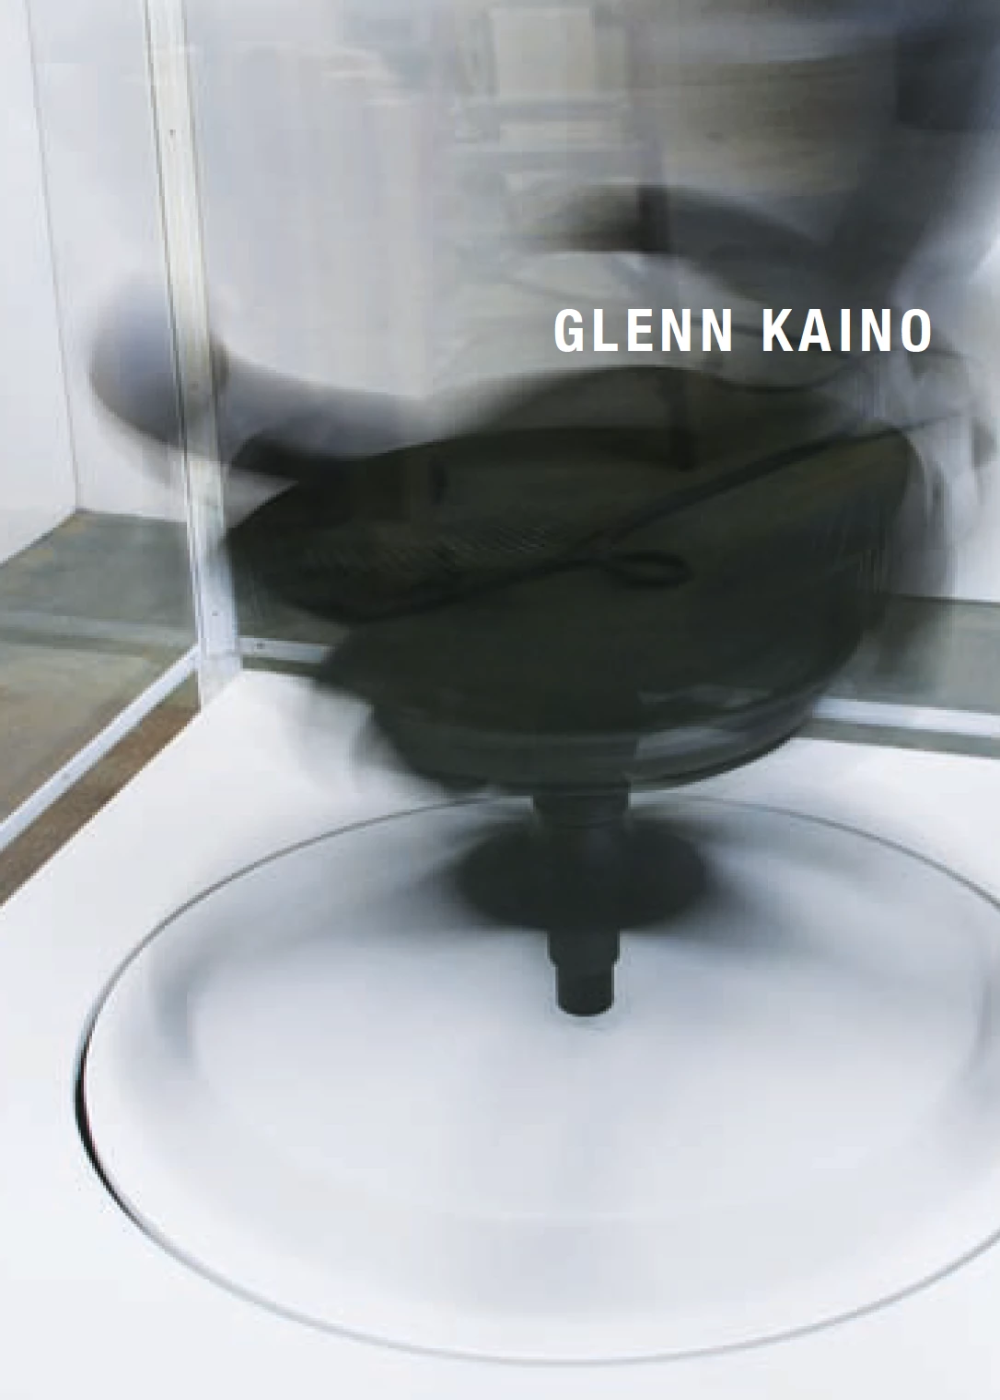 Glenn Kaino - Book at Kavi Gupta Editions